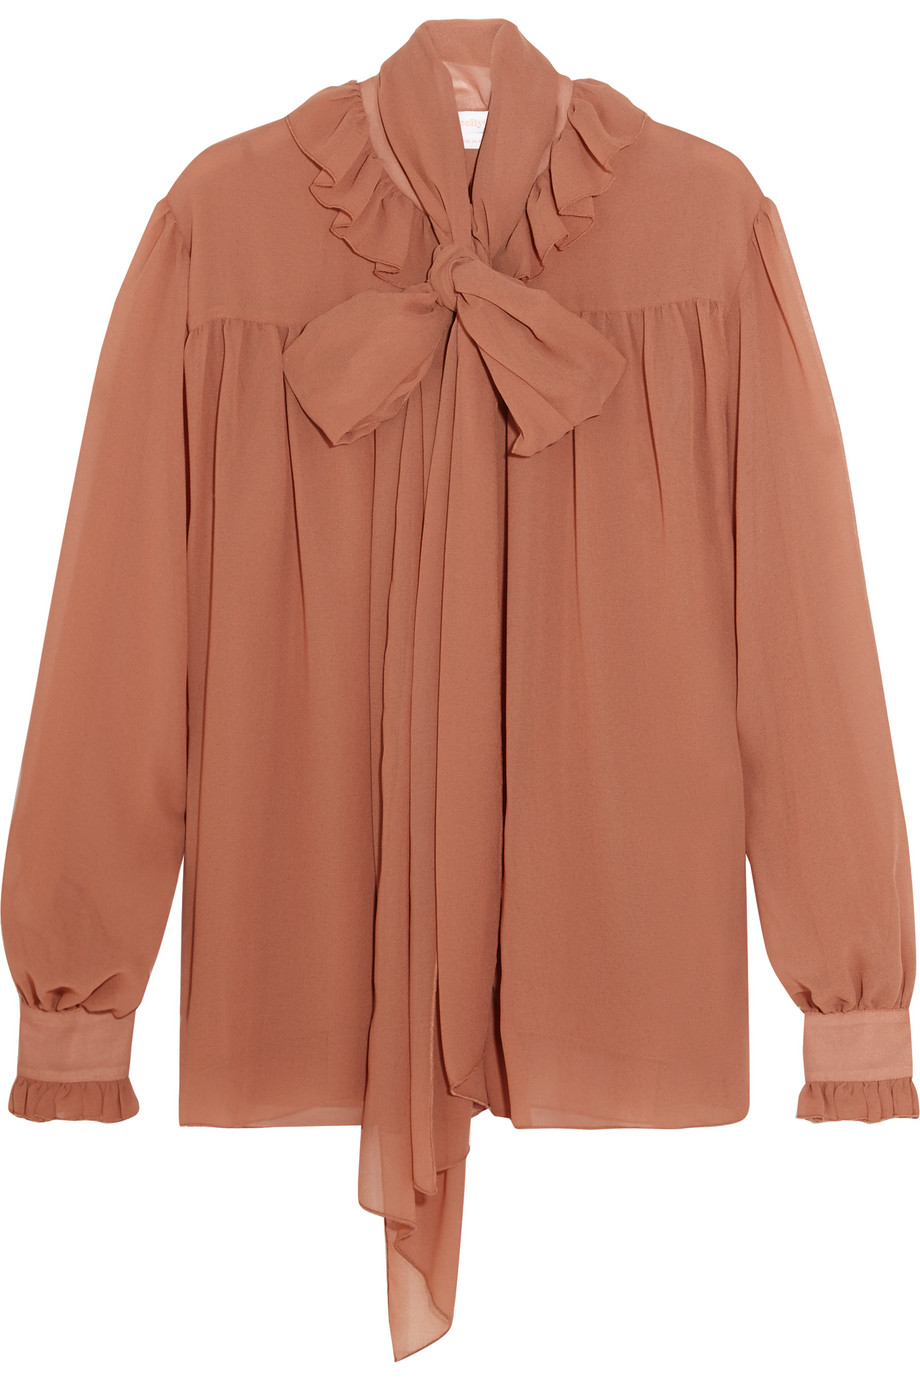 See by Chloé Pussy-Bow Chiffon Blouse, Size: 44